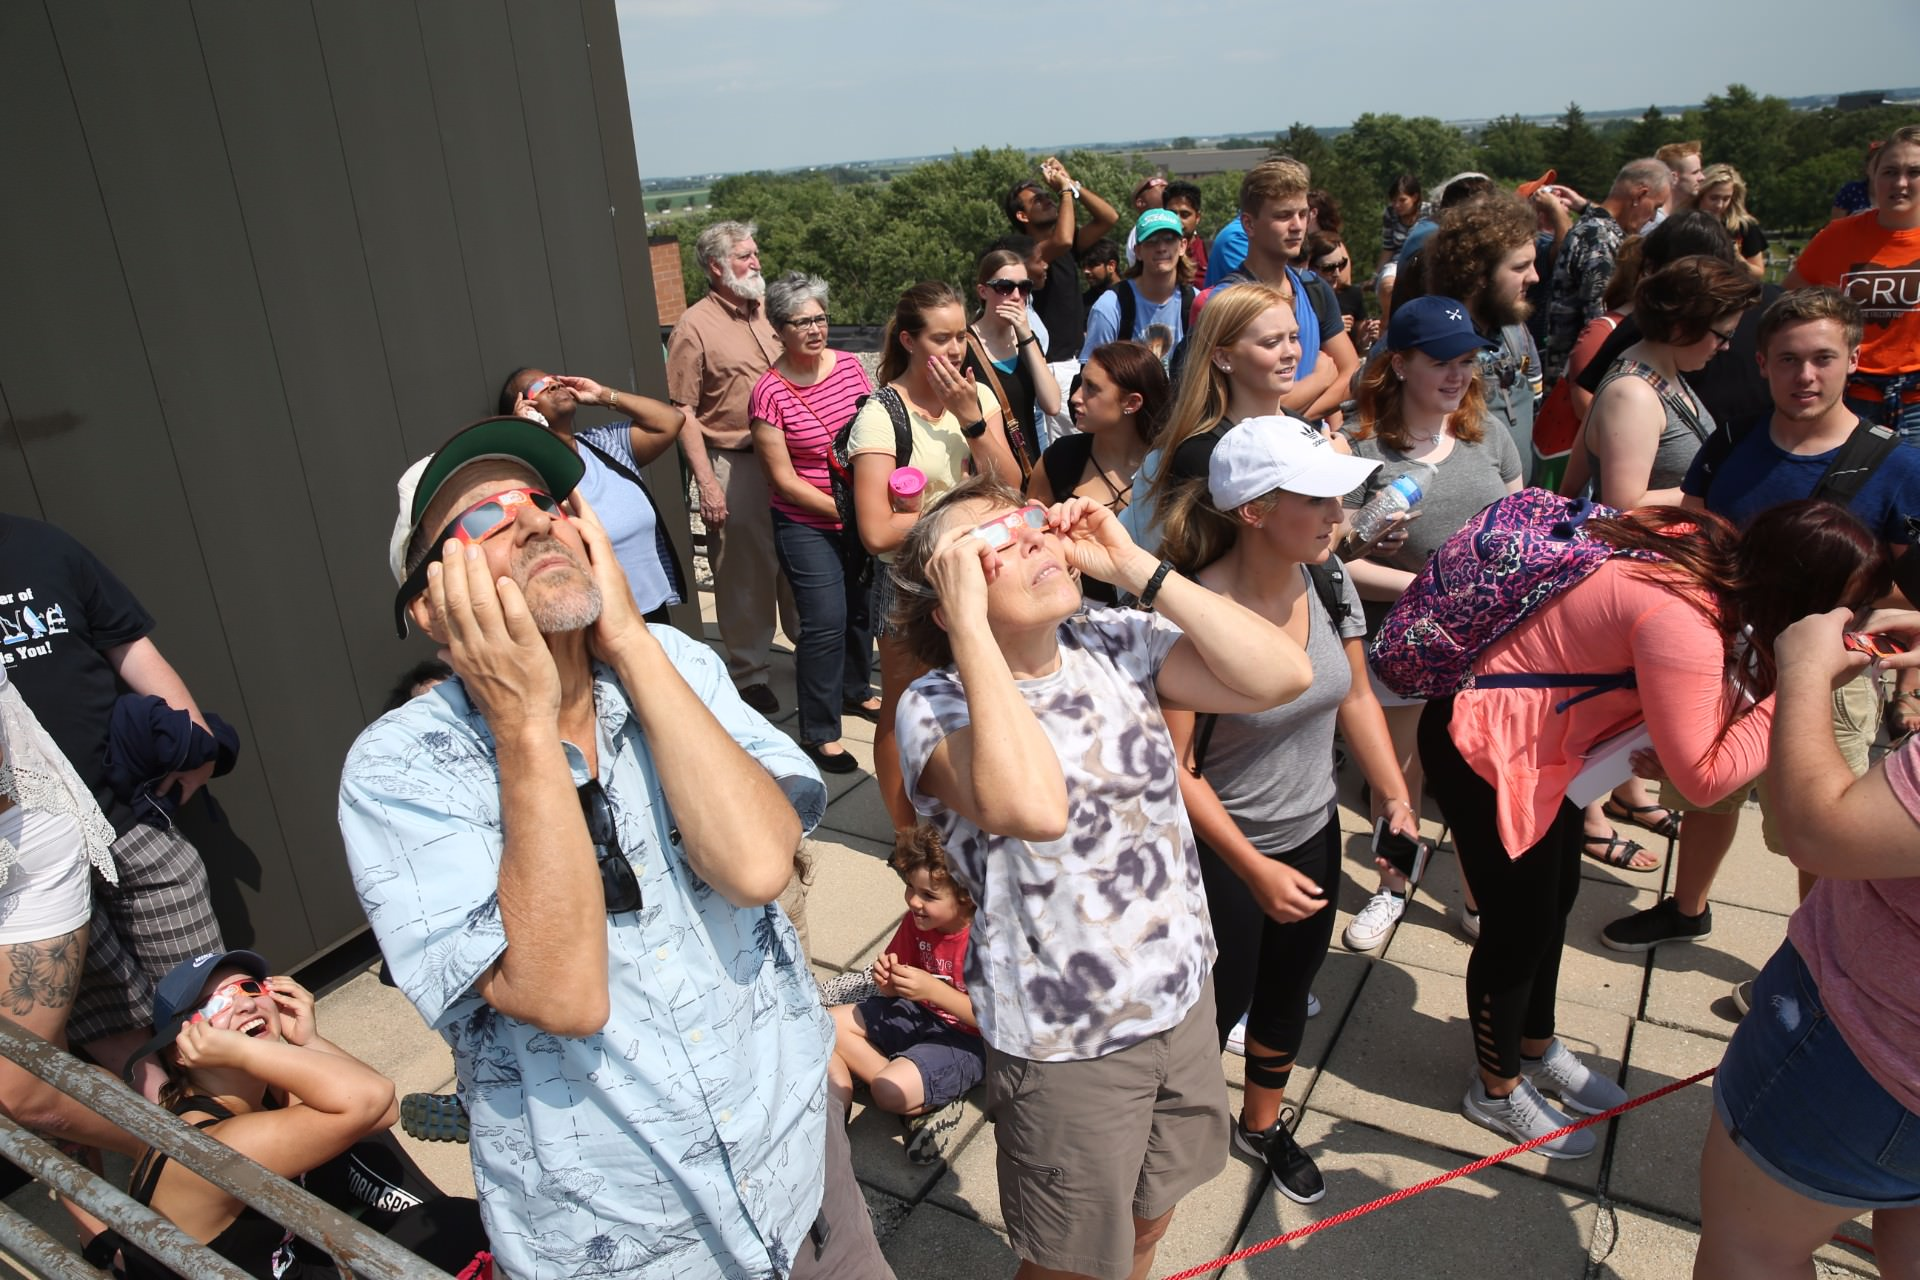 people looking at solar eclipse on rooftop